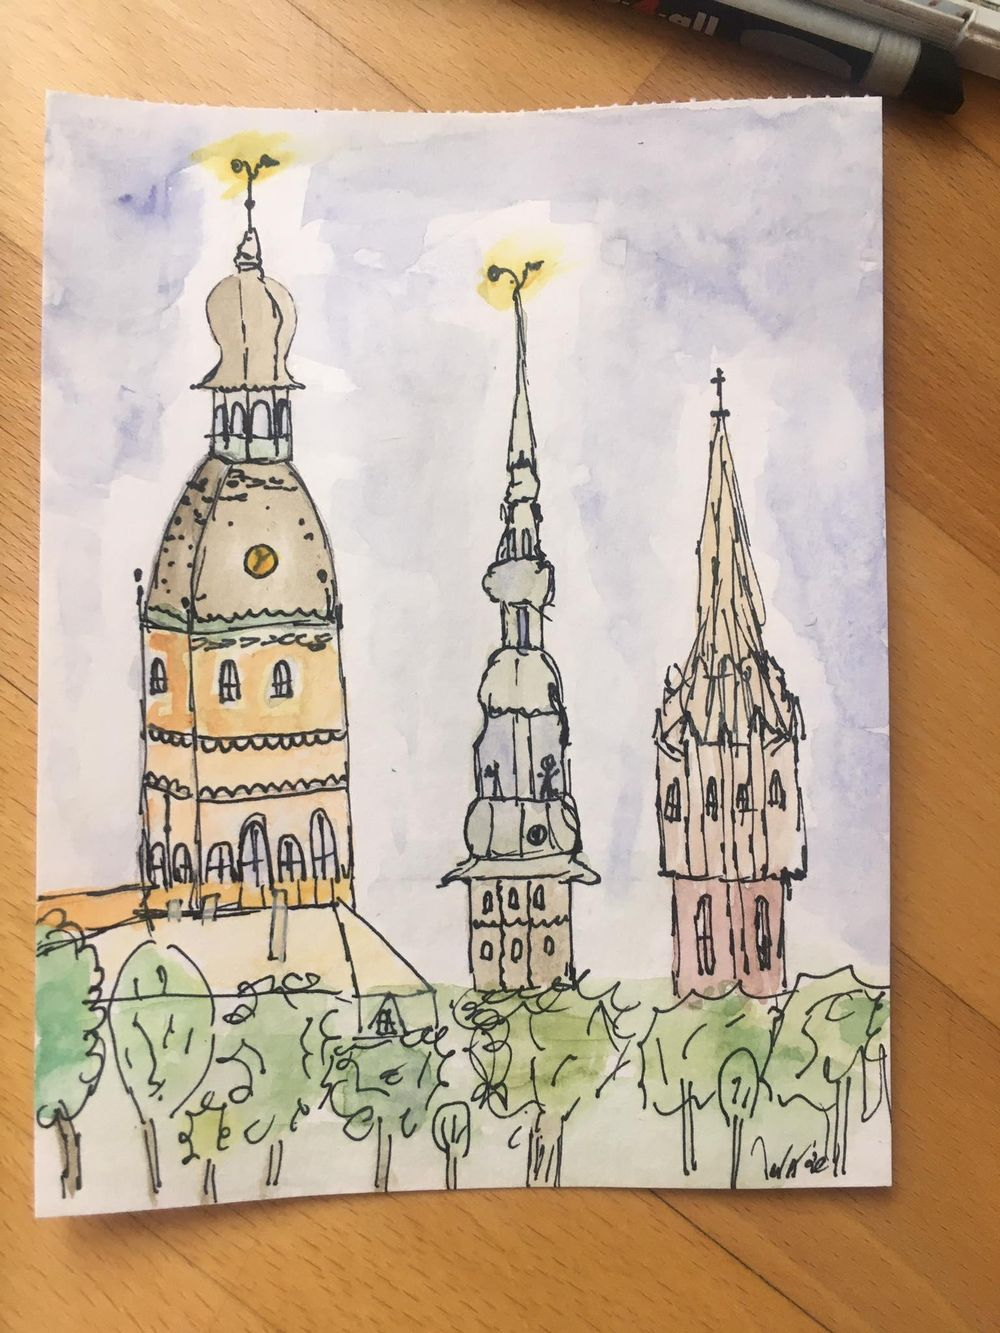 Riga, Europe. Thanks, Peggy! - image 1 - student project